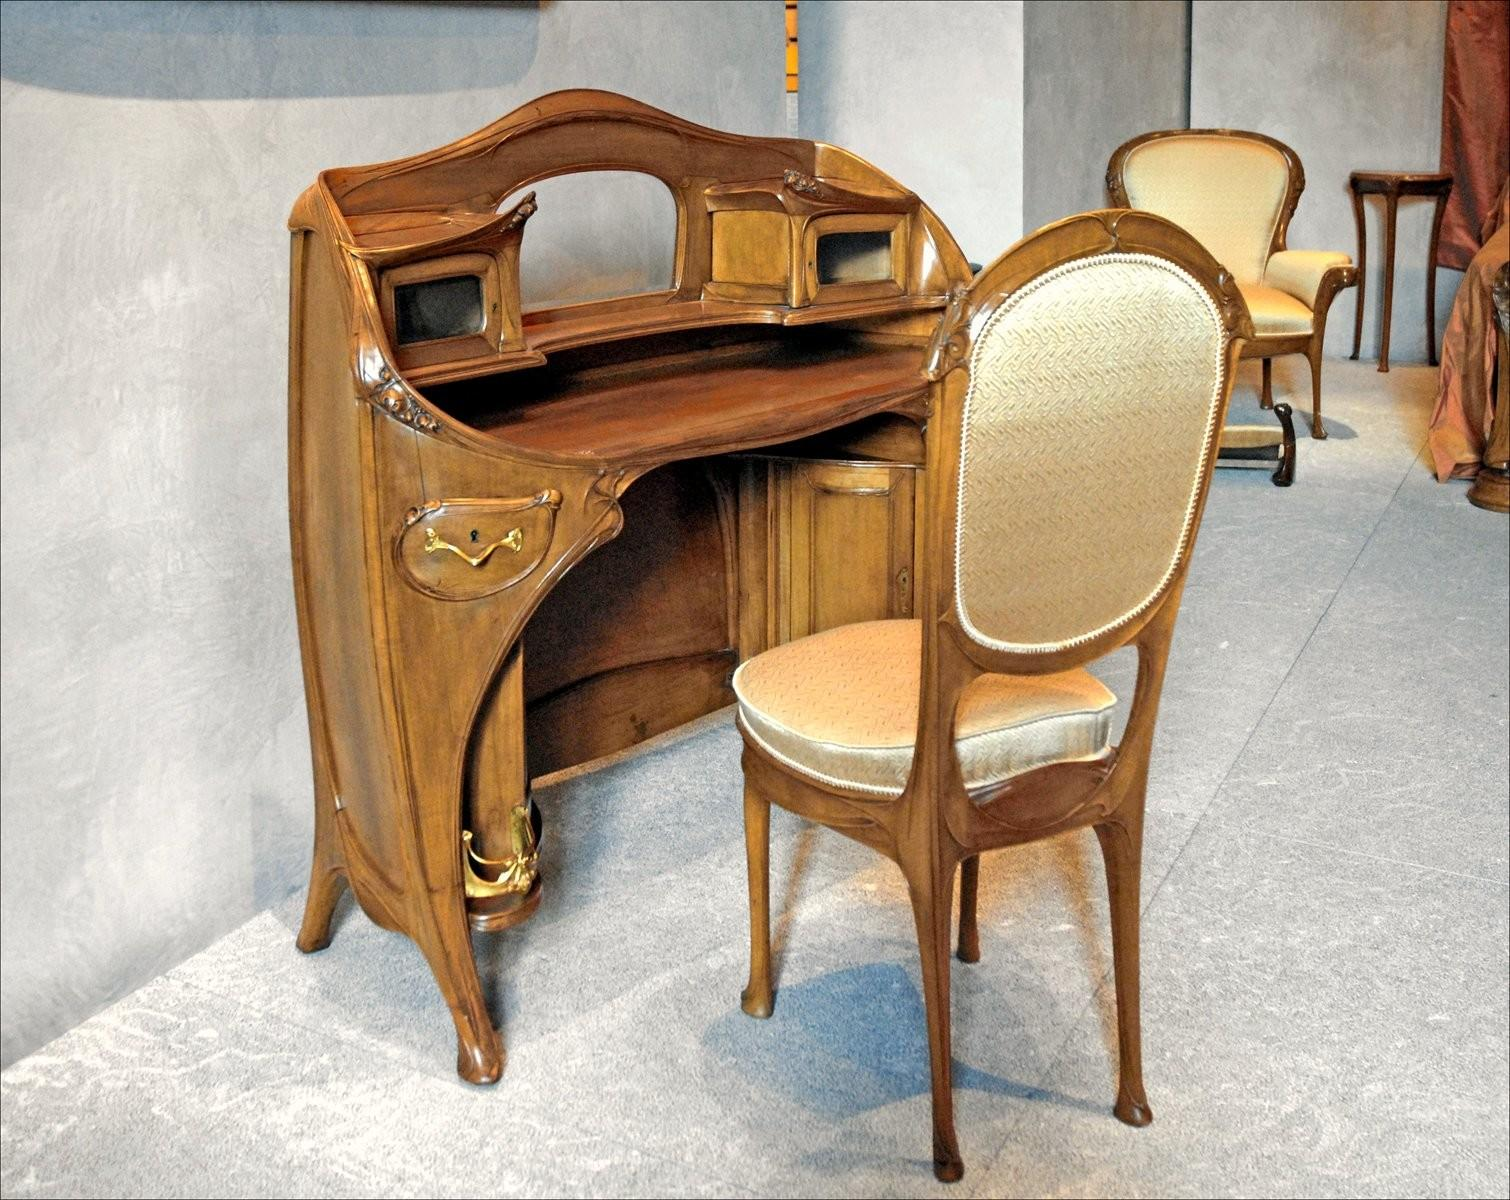 Modern Furniture Art Nouveau